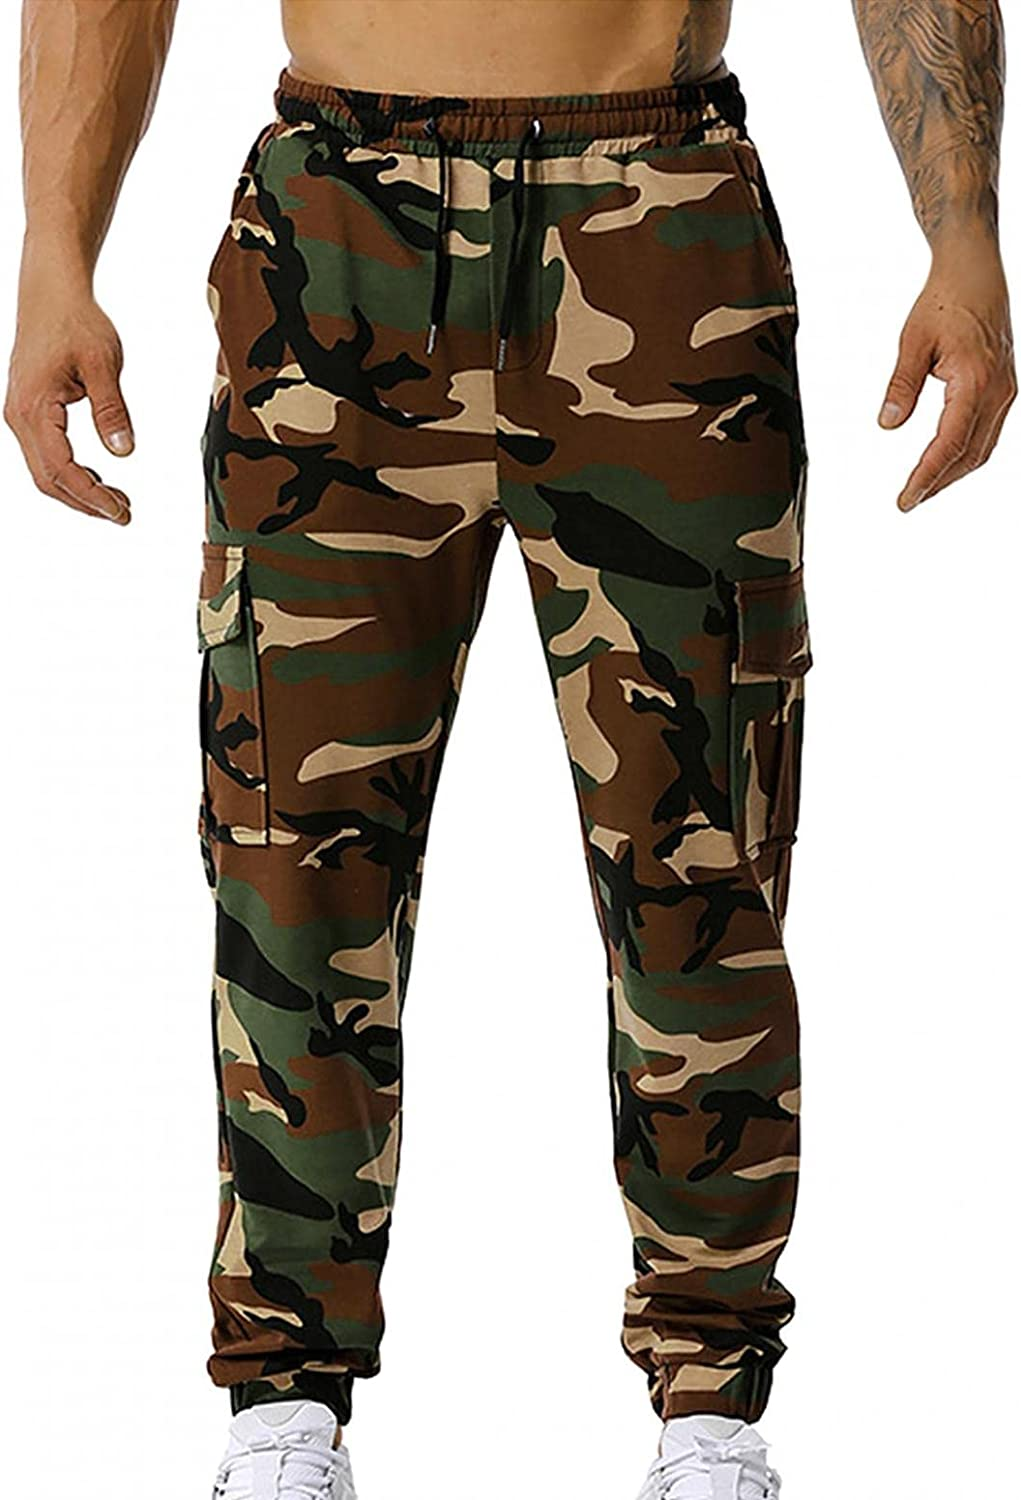 Beshion Sweatpants for Men Jogger Slim Fit Light Breathable Quick Dry Athletic Pants Casual Workout Camouflage Trousers